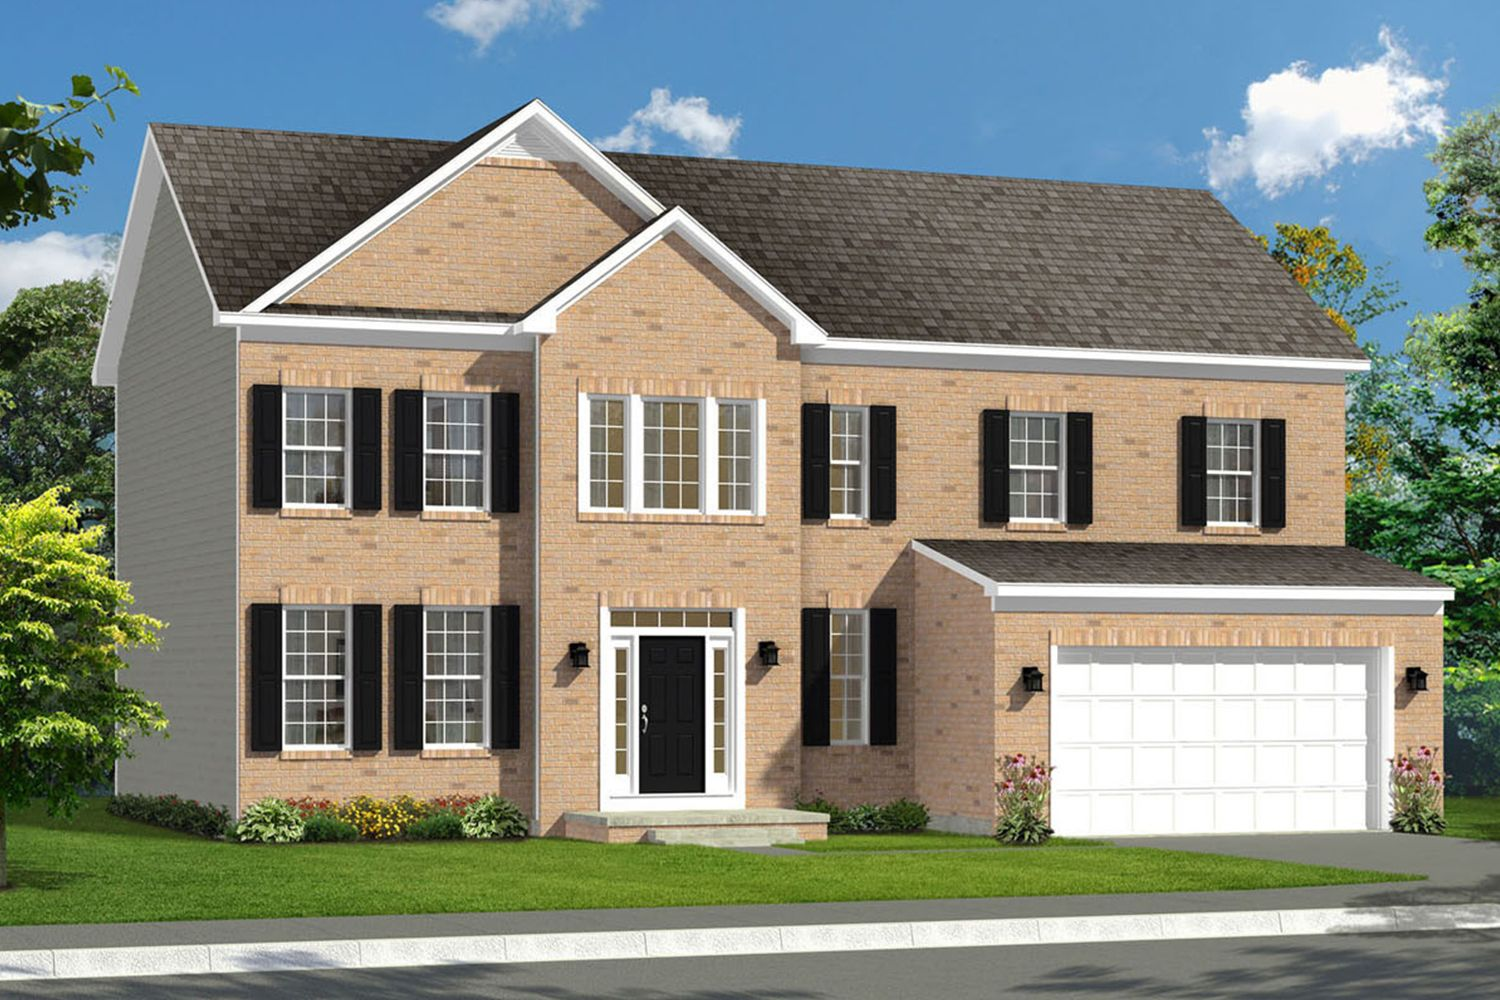 dan ryan builders shipley meadows fairfax ii 1227419 jessup md new home for sale homegain